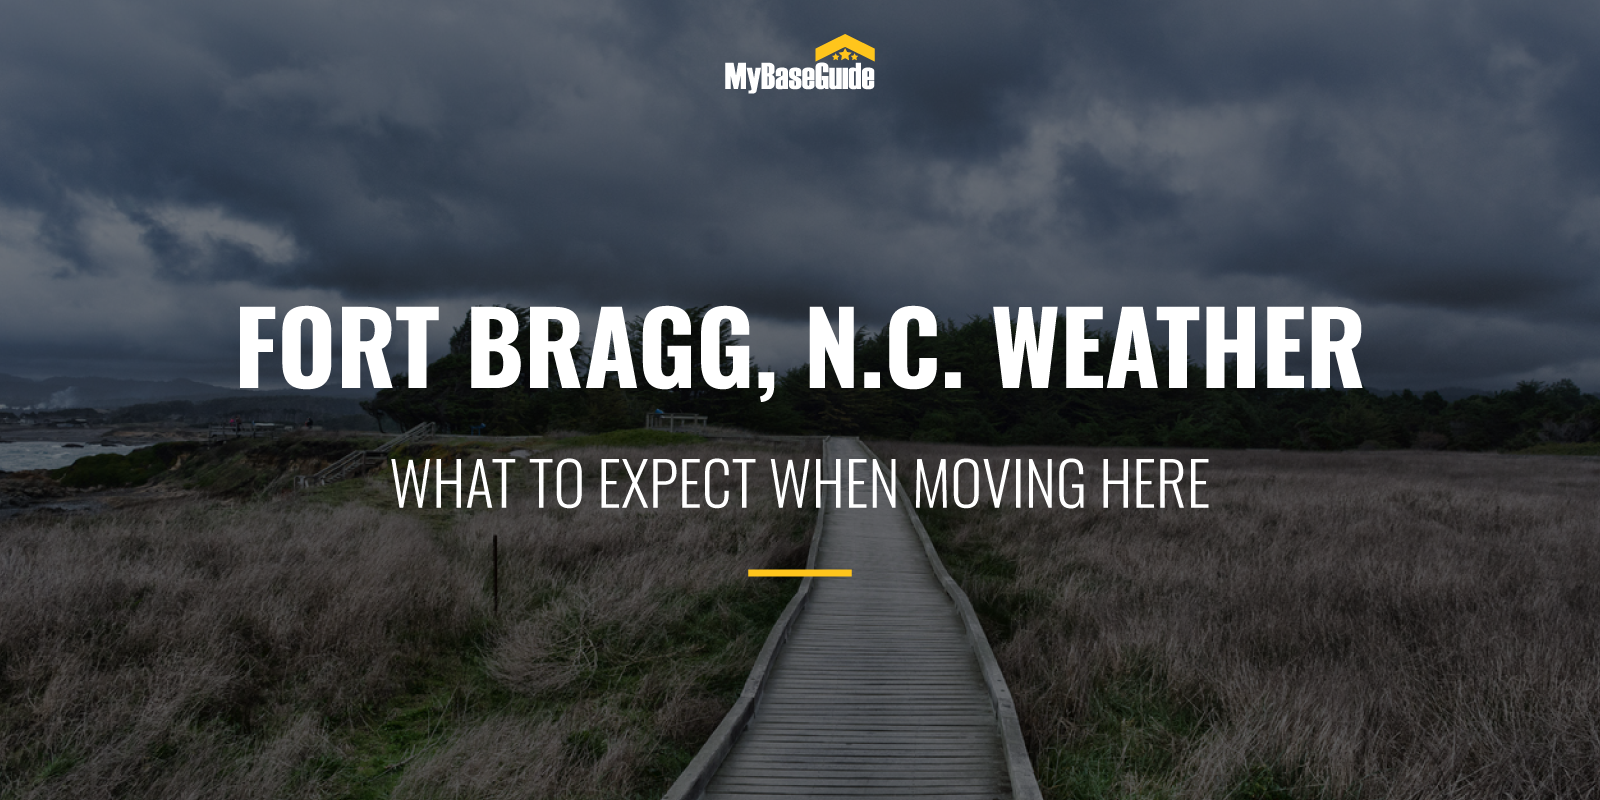 Fort Bragg NC Weather